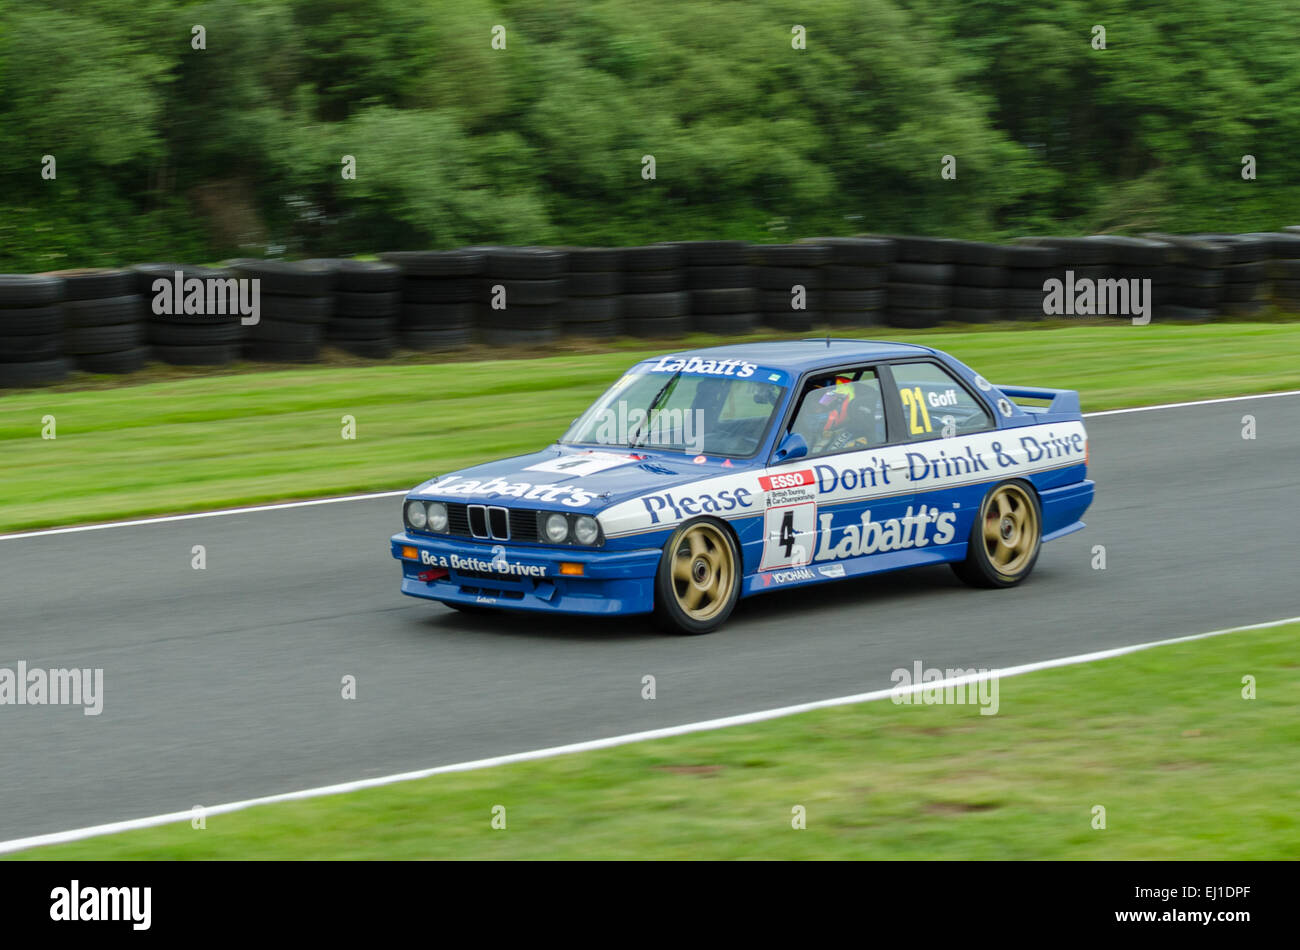 A classic BMW competes in a Classic Touring cars race at Oulton Park race circuit - Stock Image